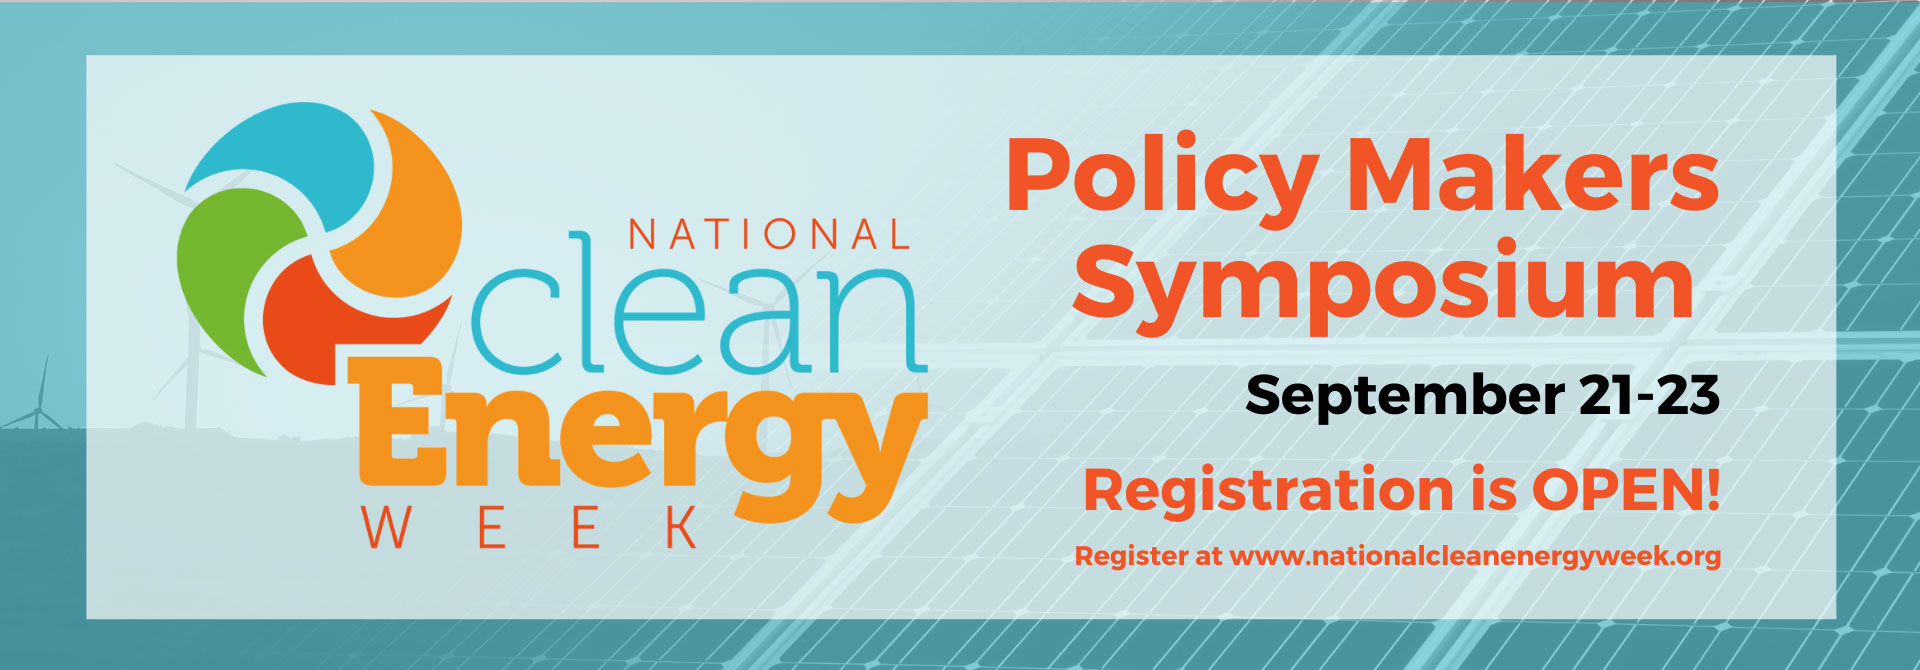 Policy Makers Symposium